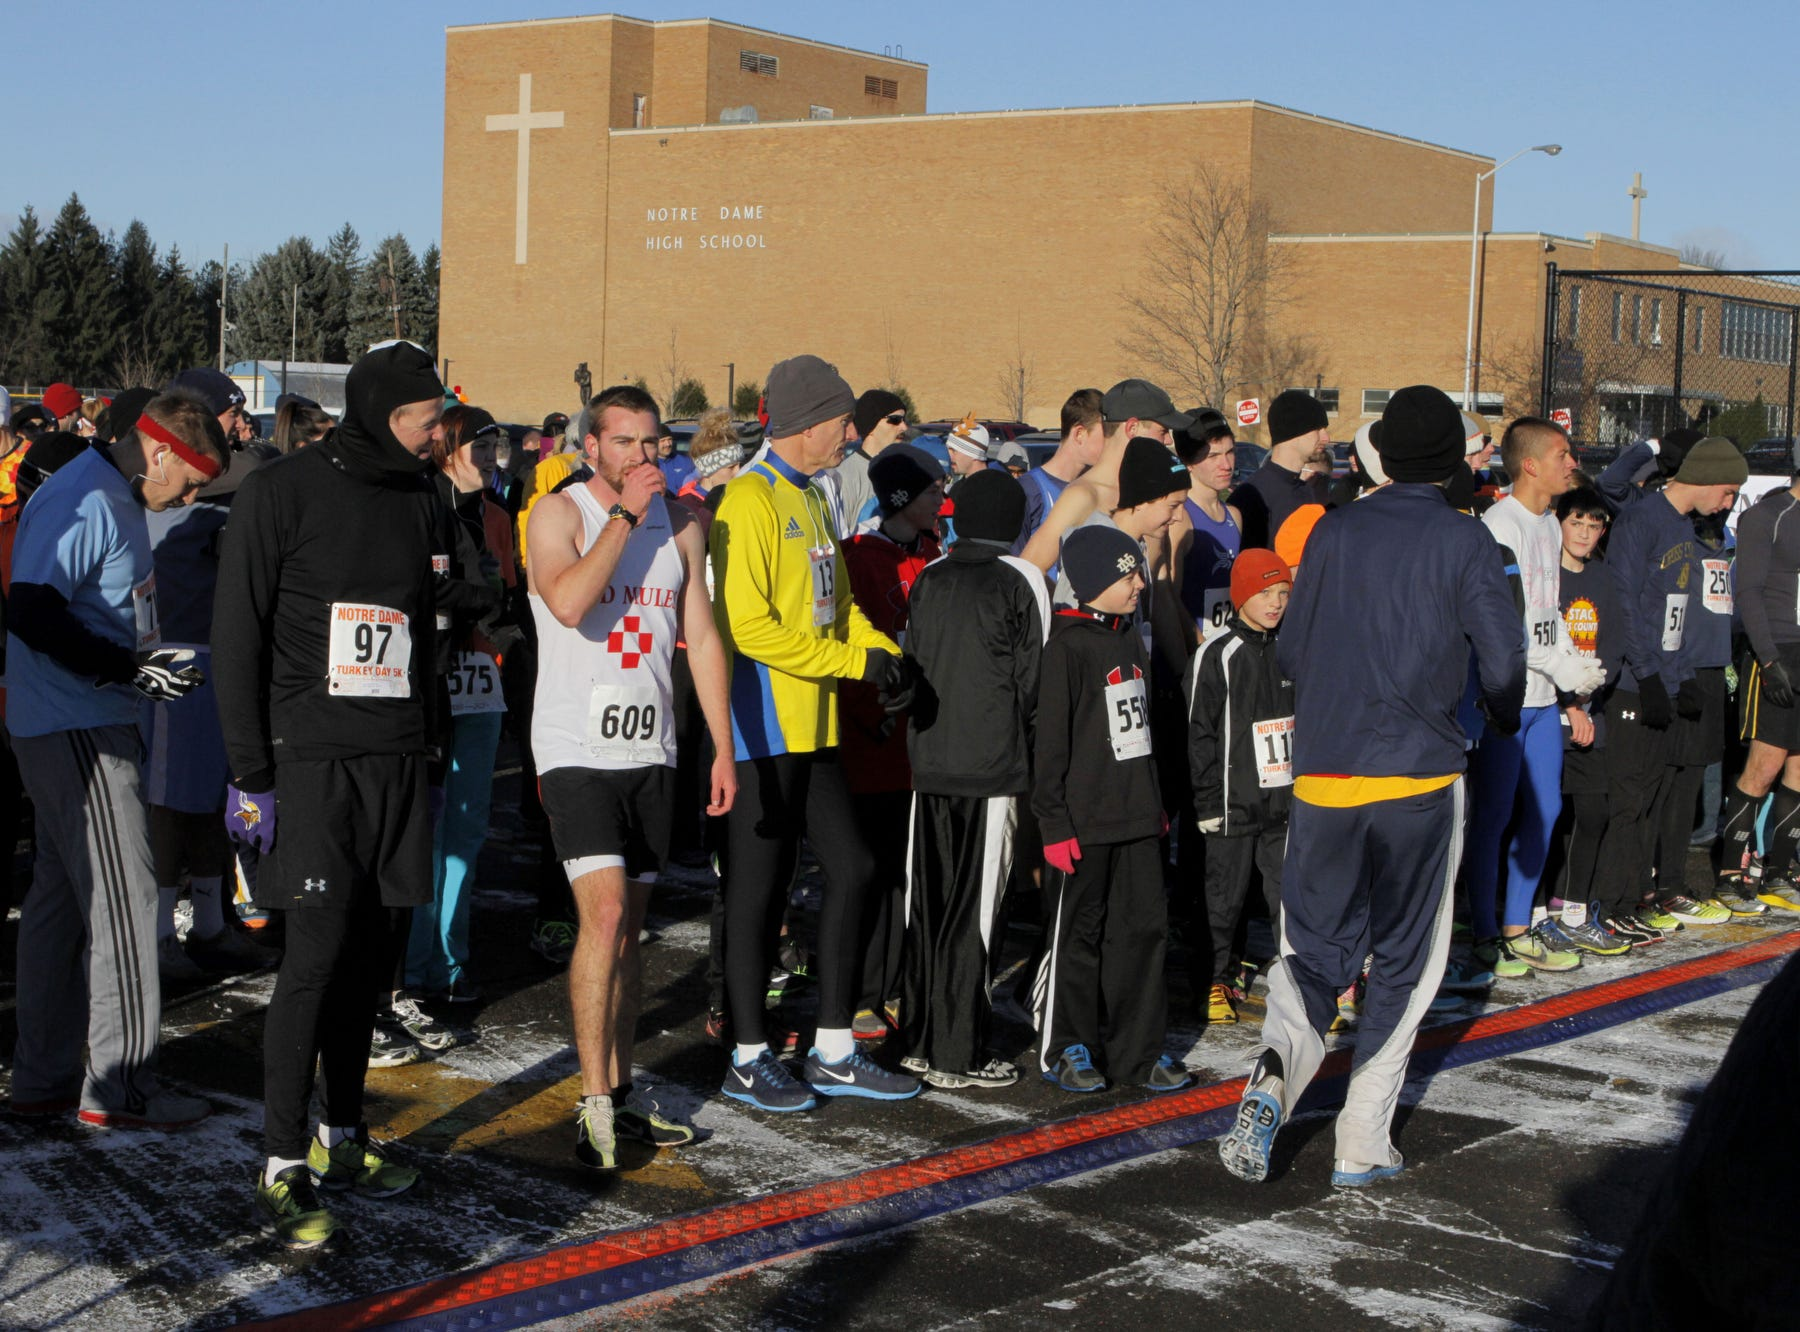 The temperature was about 20 degrees at the start of the 2013 Turkey Trot 5K at Notre Dame High in Southport.